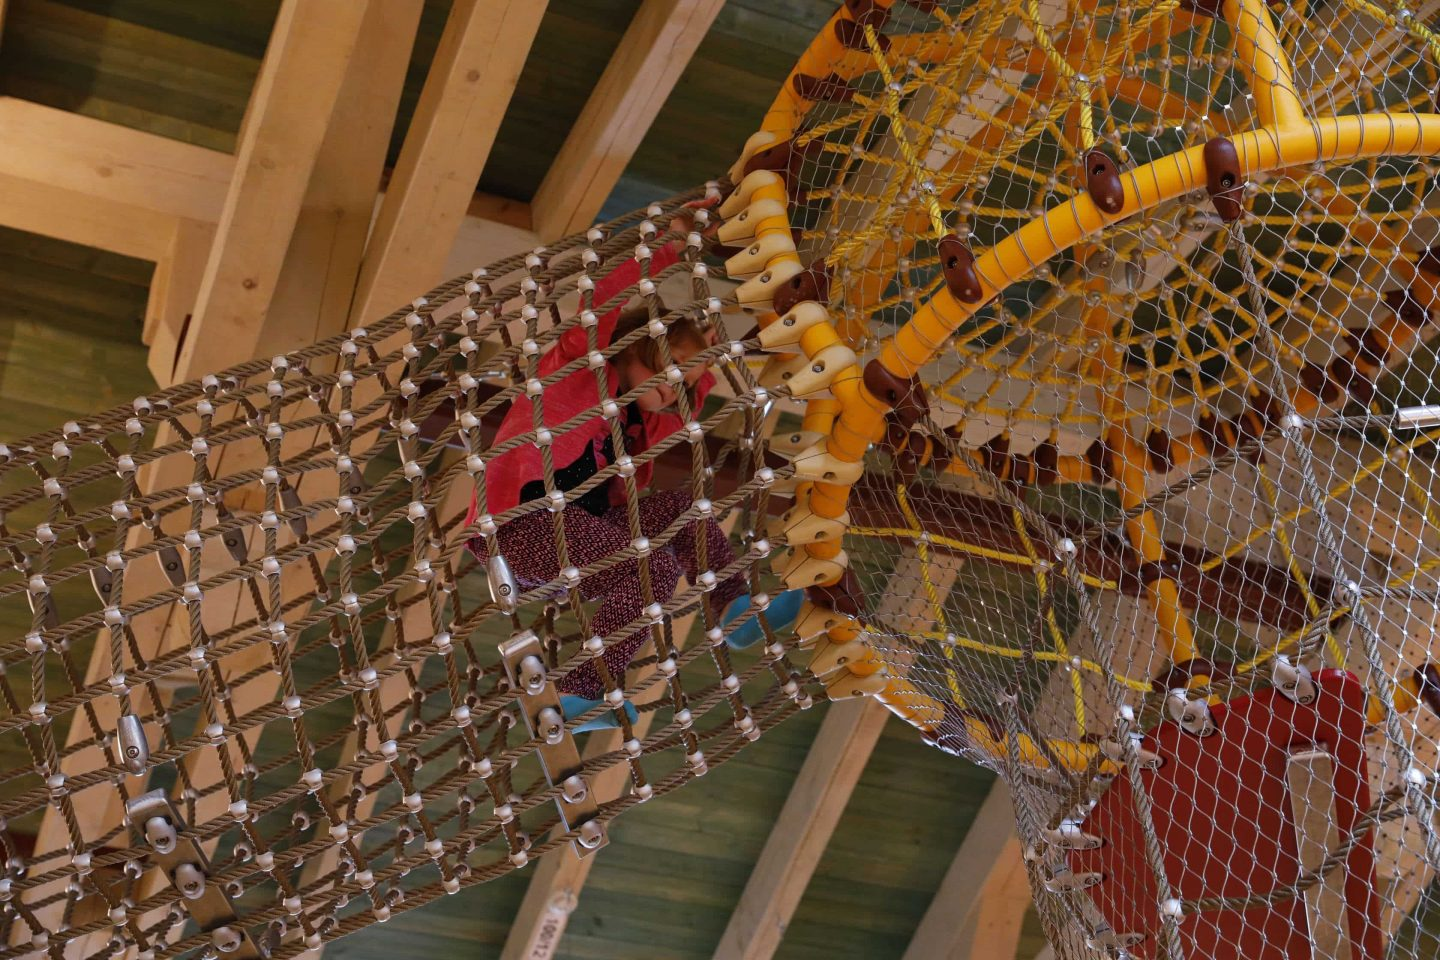 Safety nets are stretched around the custom-made play equipment